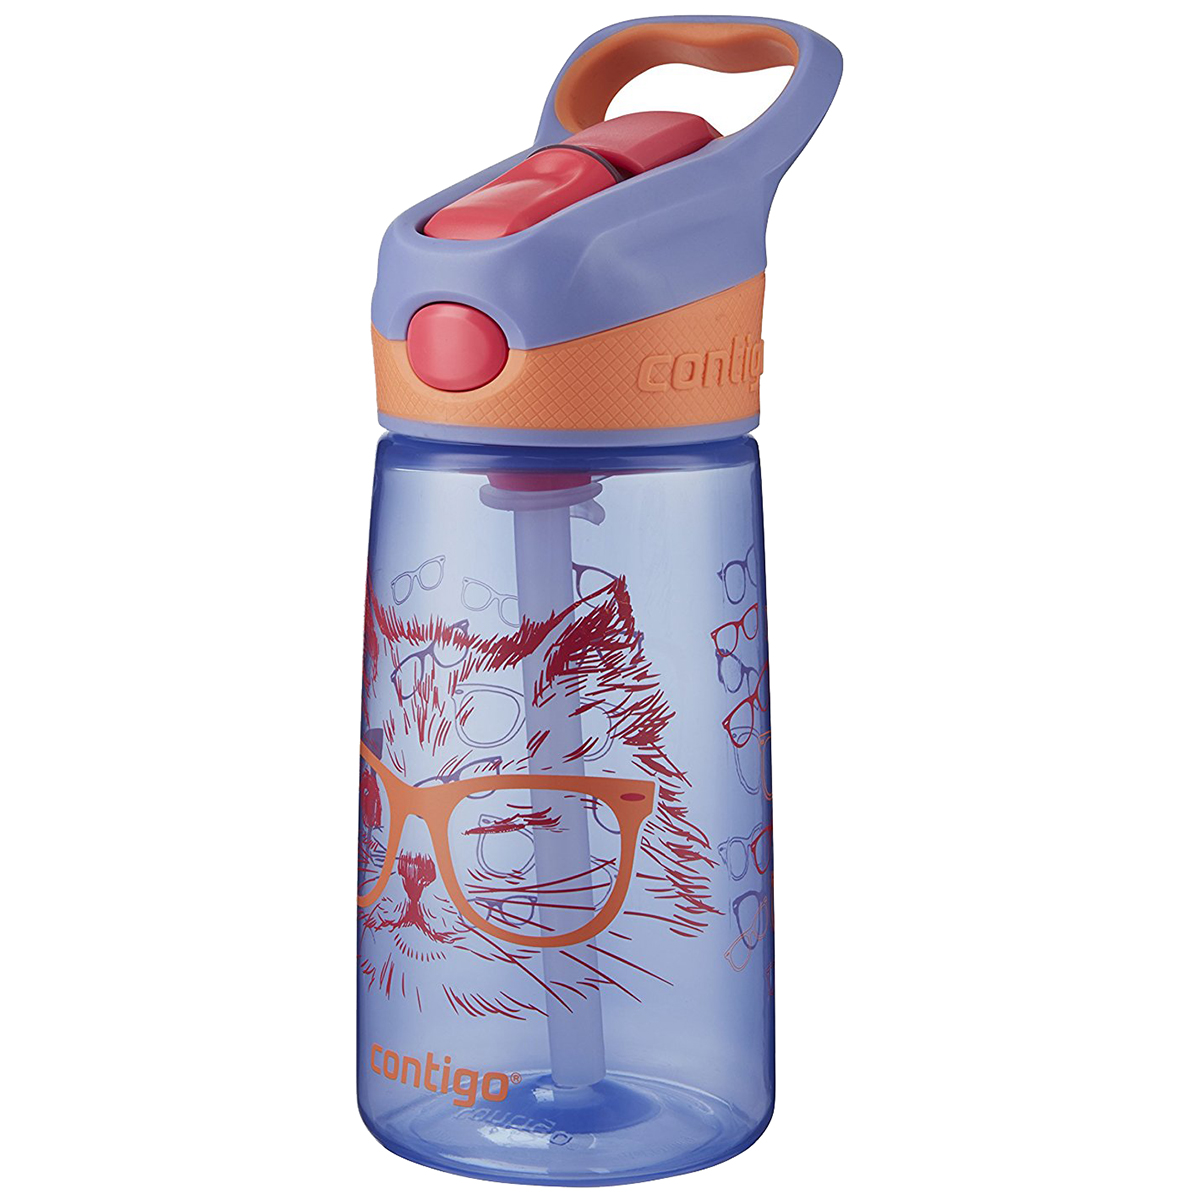 Contigo-14-oz-Kid-039-s-Striker-Autospout-Water-Bottle Indexbild 53